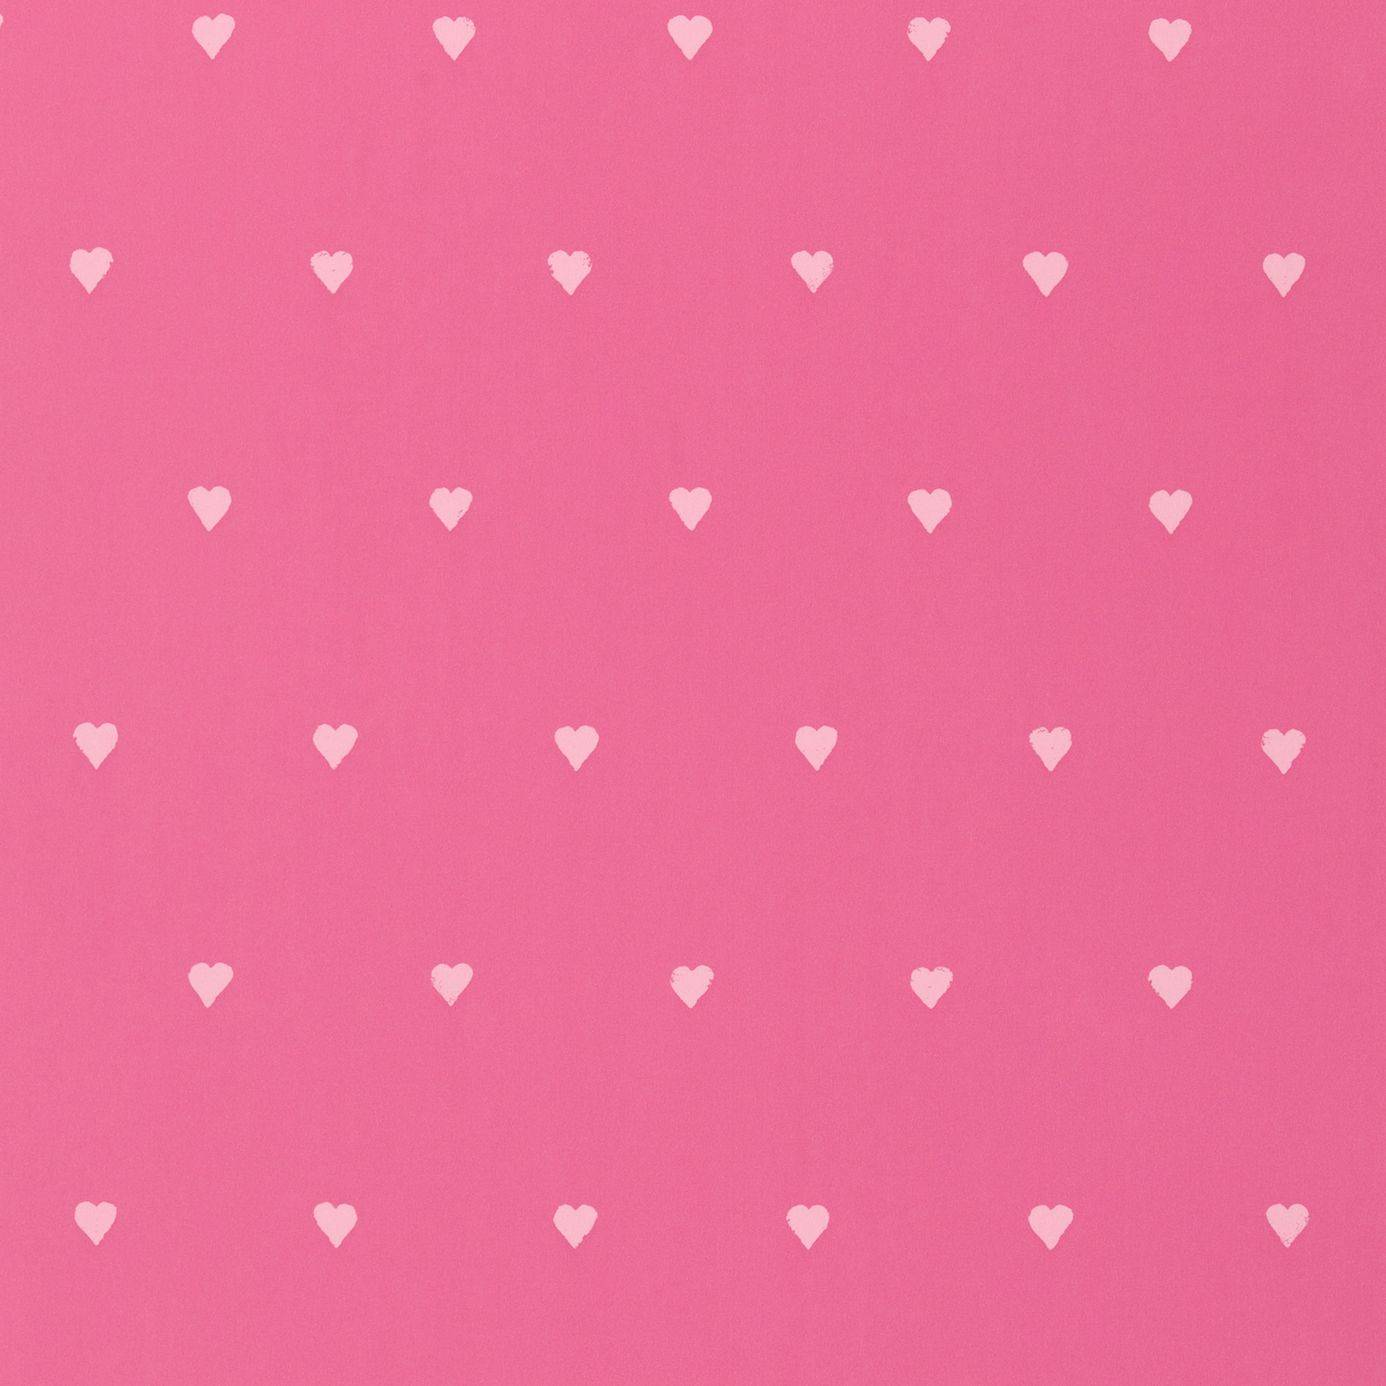 Love hearts wallpaper fuchsiacandy floss 70501 harlequin what harlequin what a hoot fabrics wallpapers love hearts wallpaper fuchsiacandy floss loading zoom voltagebd Image collections